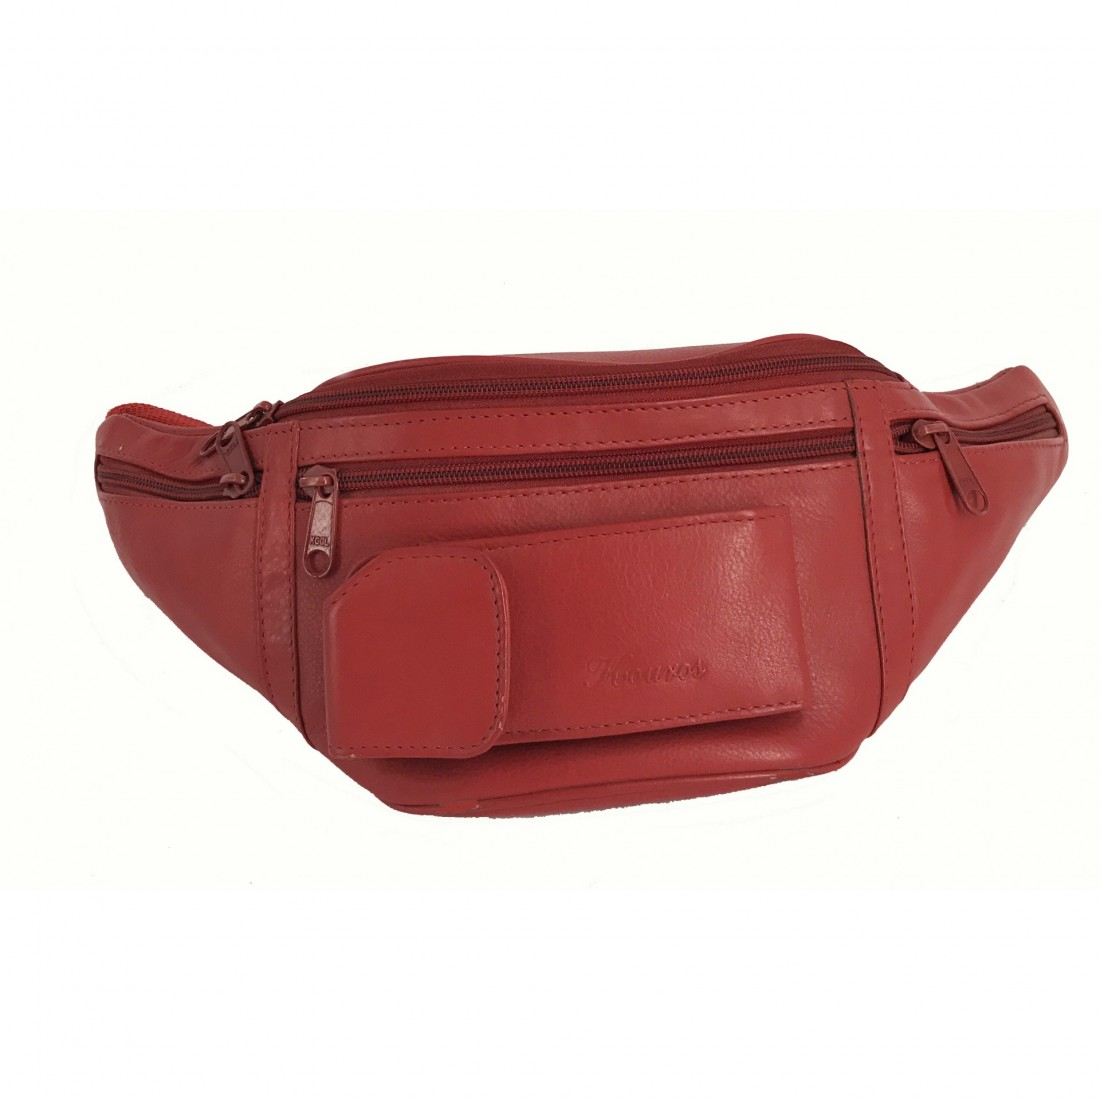 Style 117 Leather Men Bag For Waist